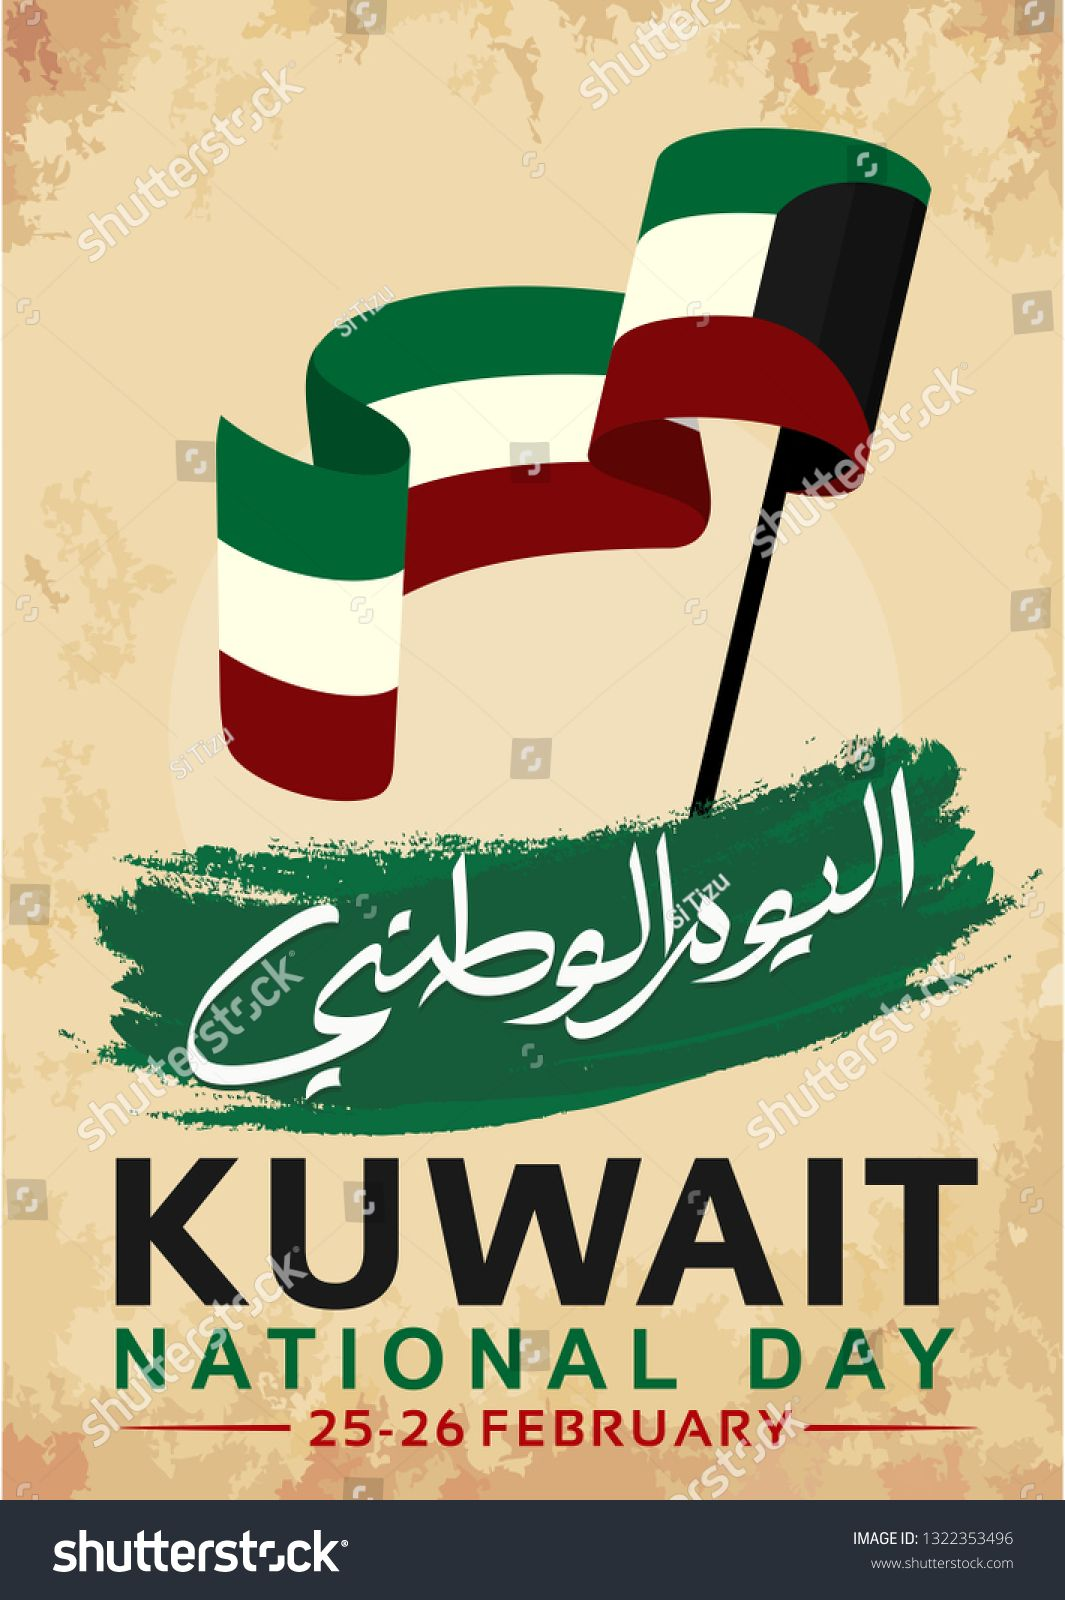 Pin By Mongzkw On منجز تنجز Kuwait National Day Arabic Text Instagram Frame